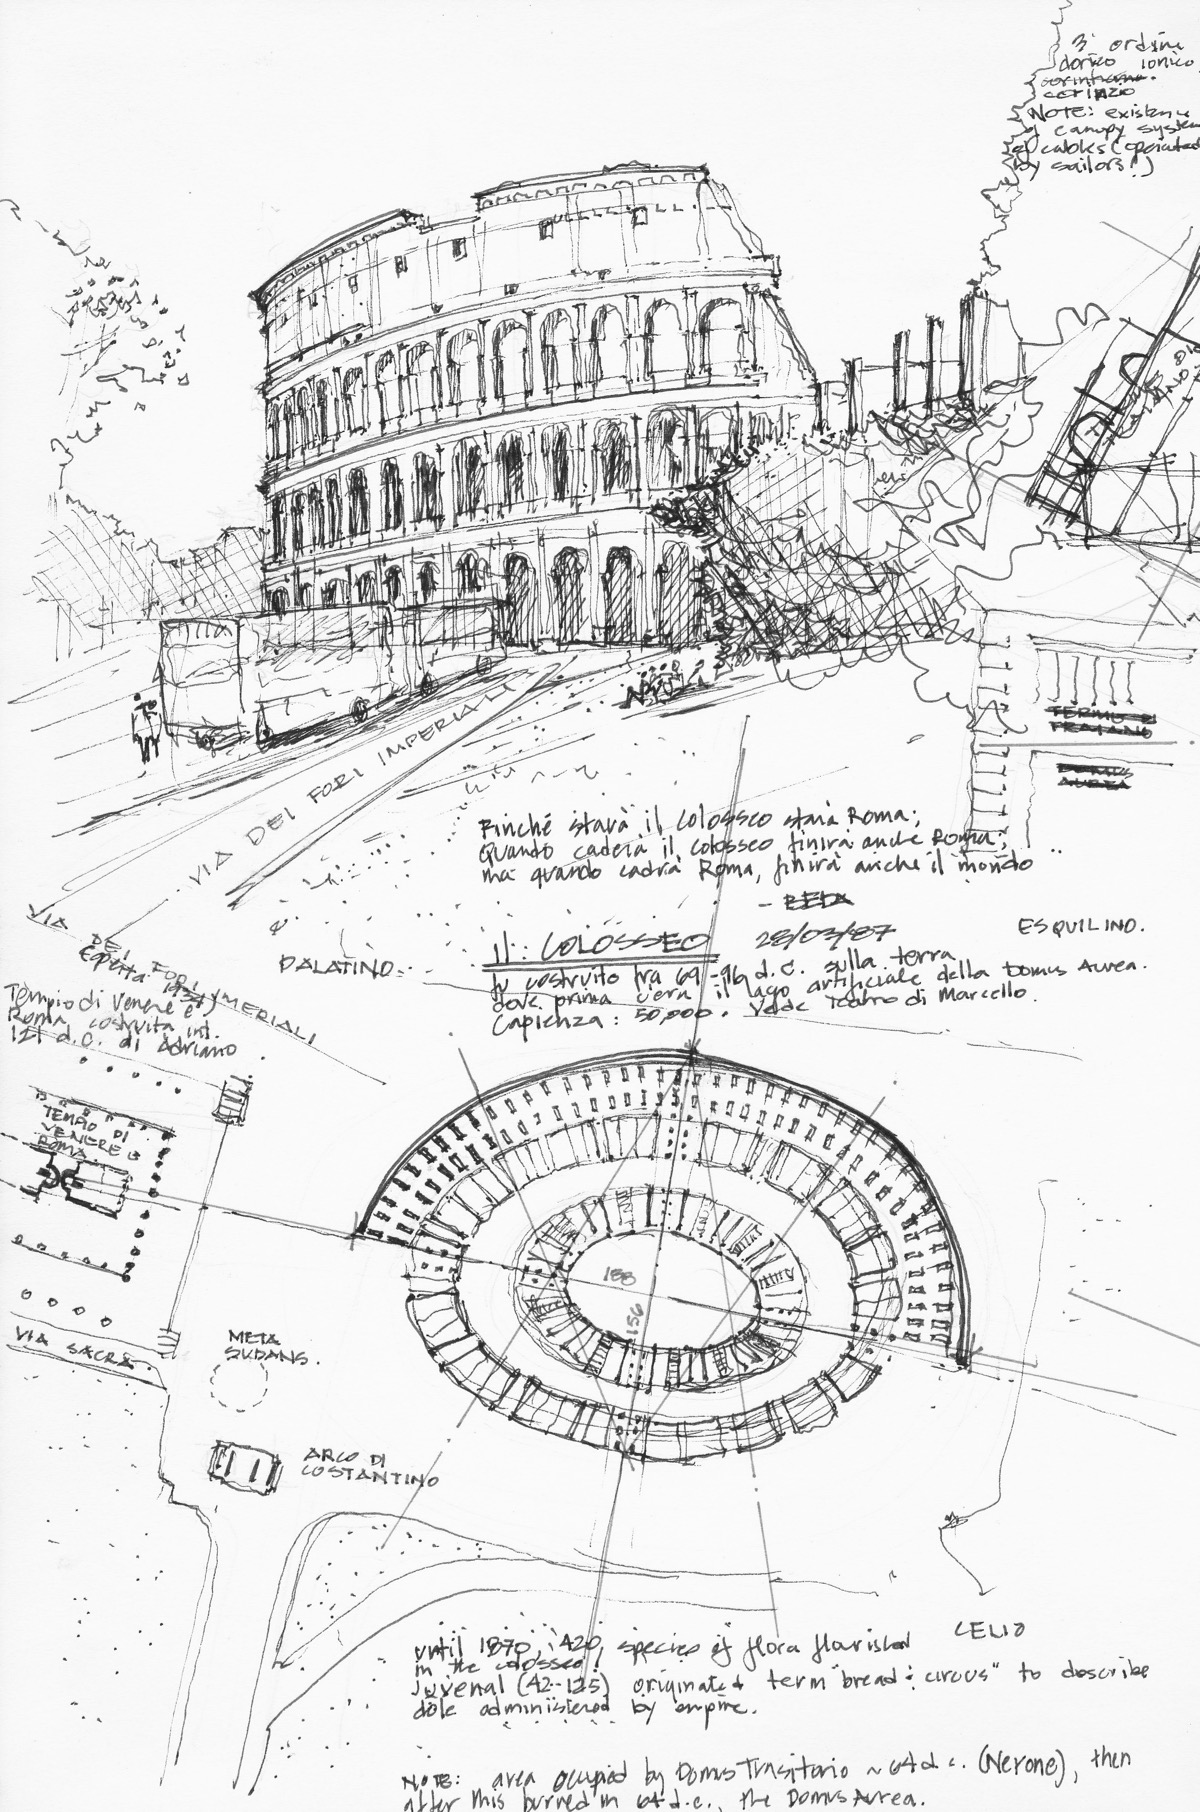 Author's sketch of Colosseum